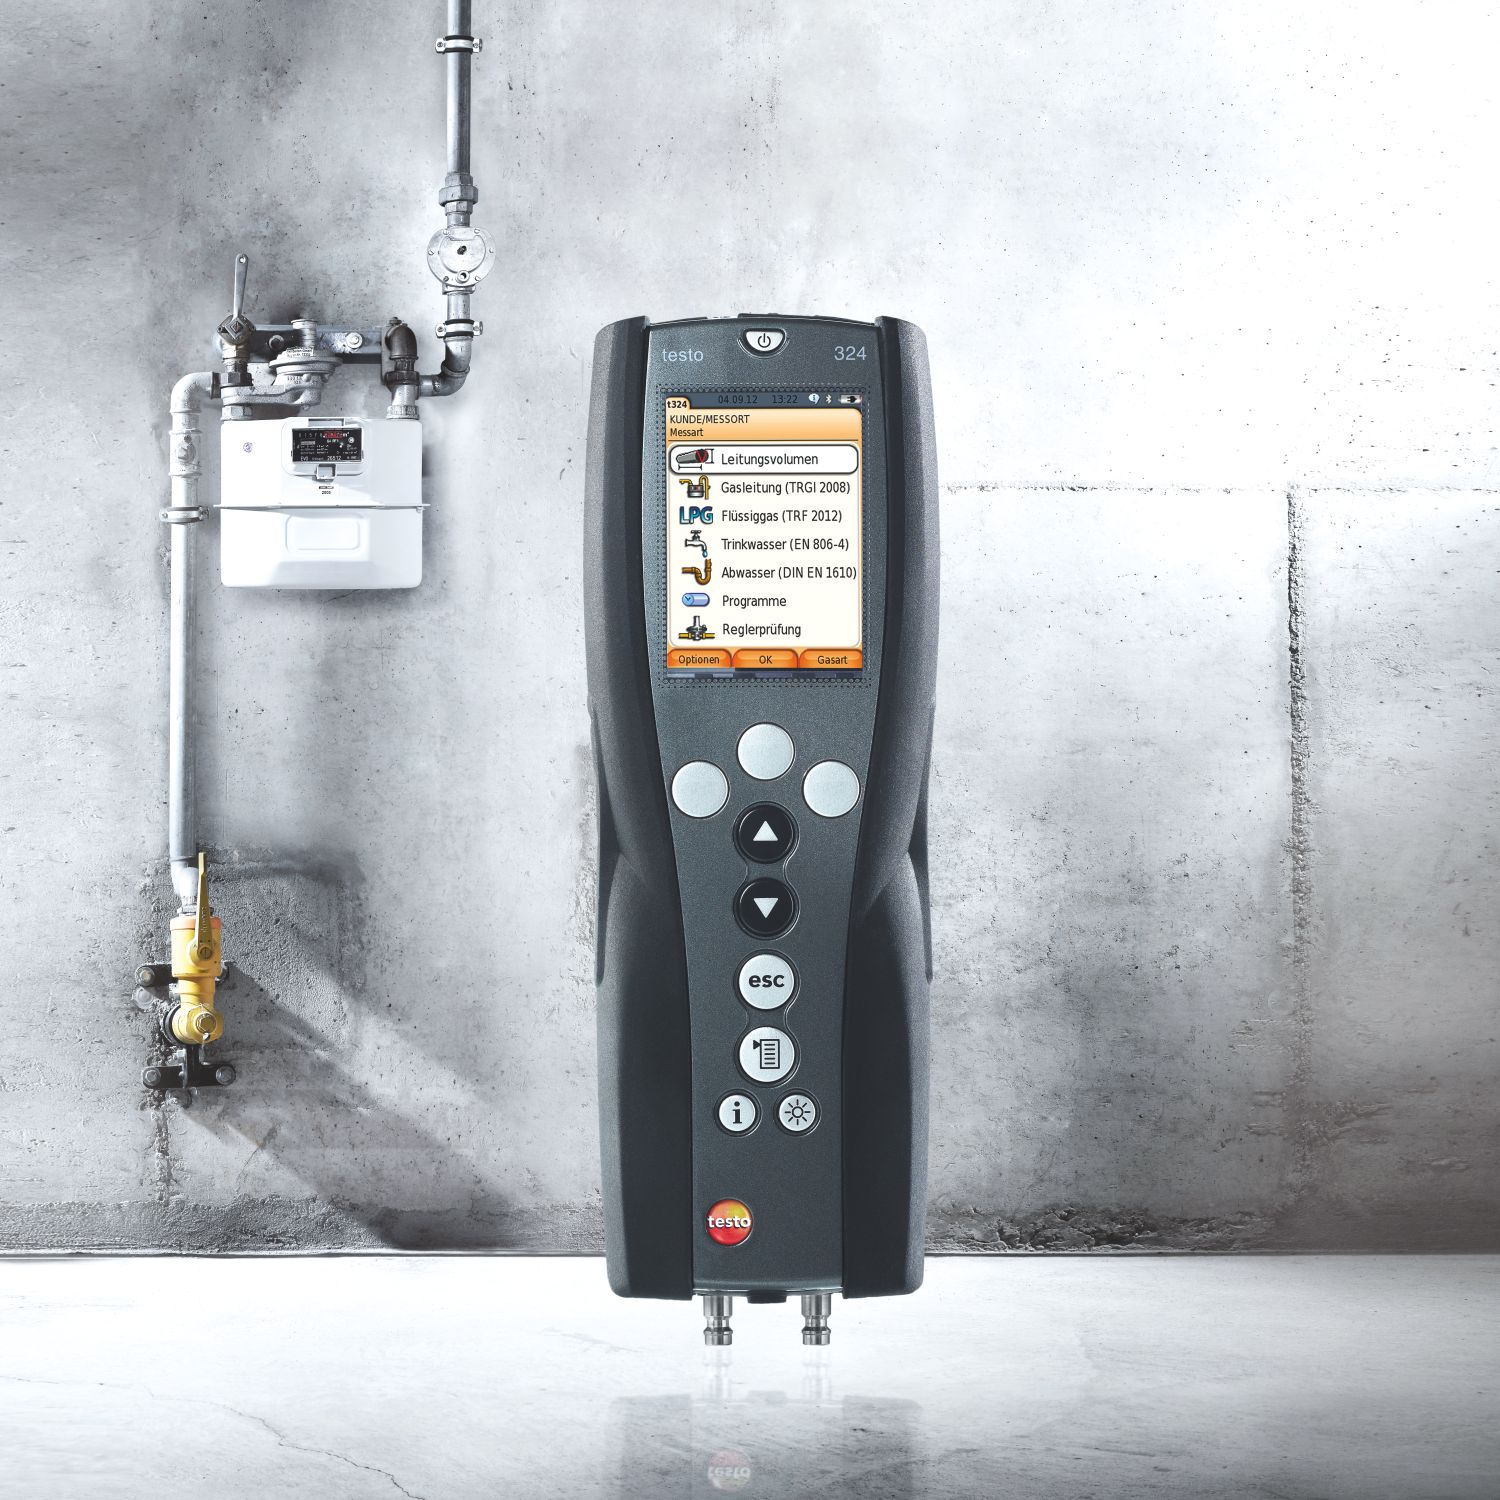 testo-324-application-emission-003927.jpg